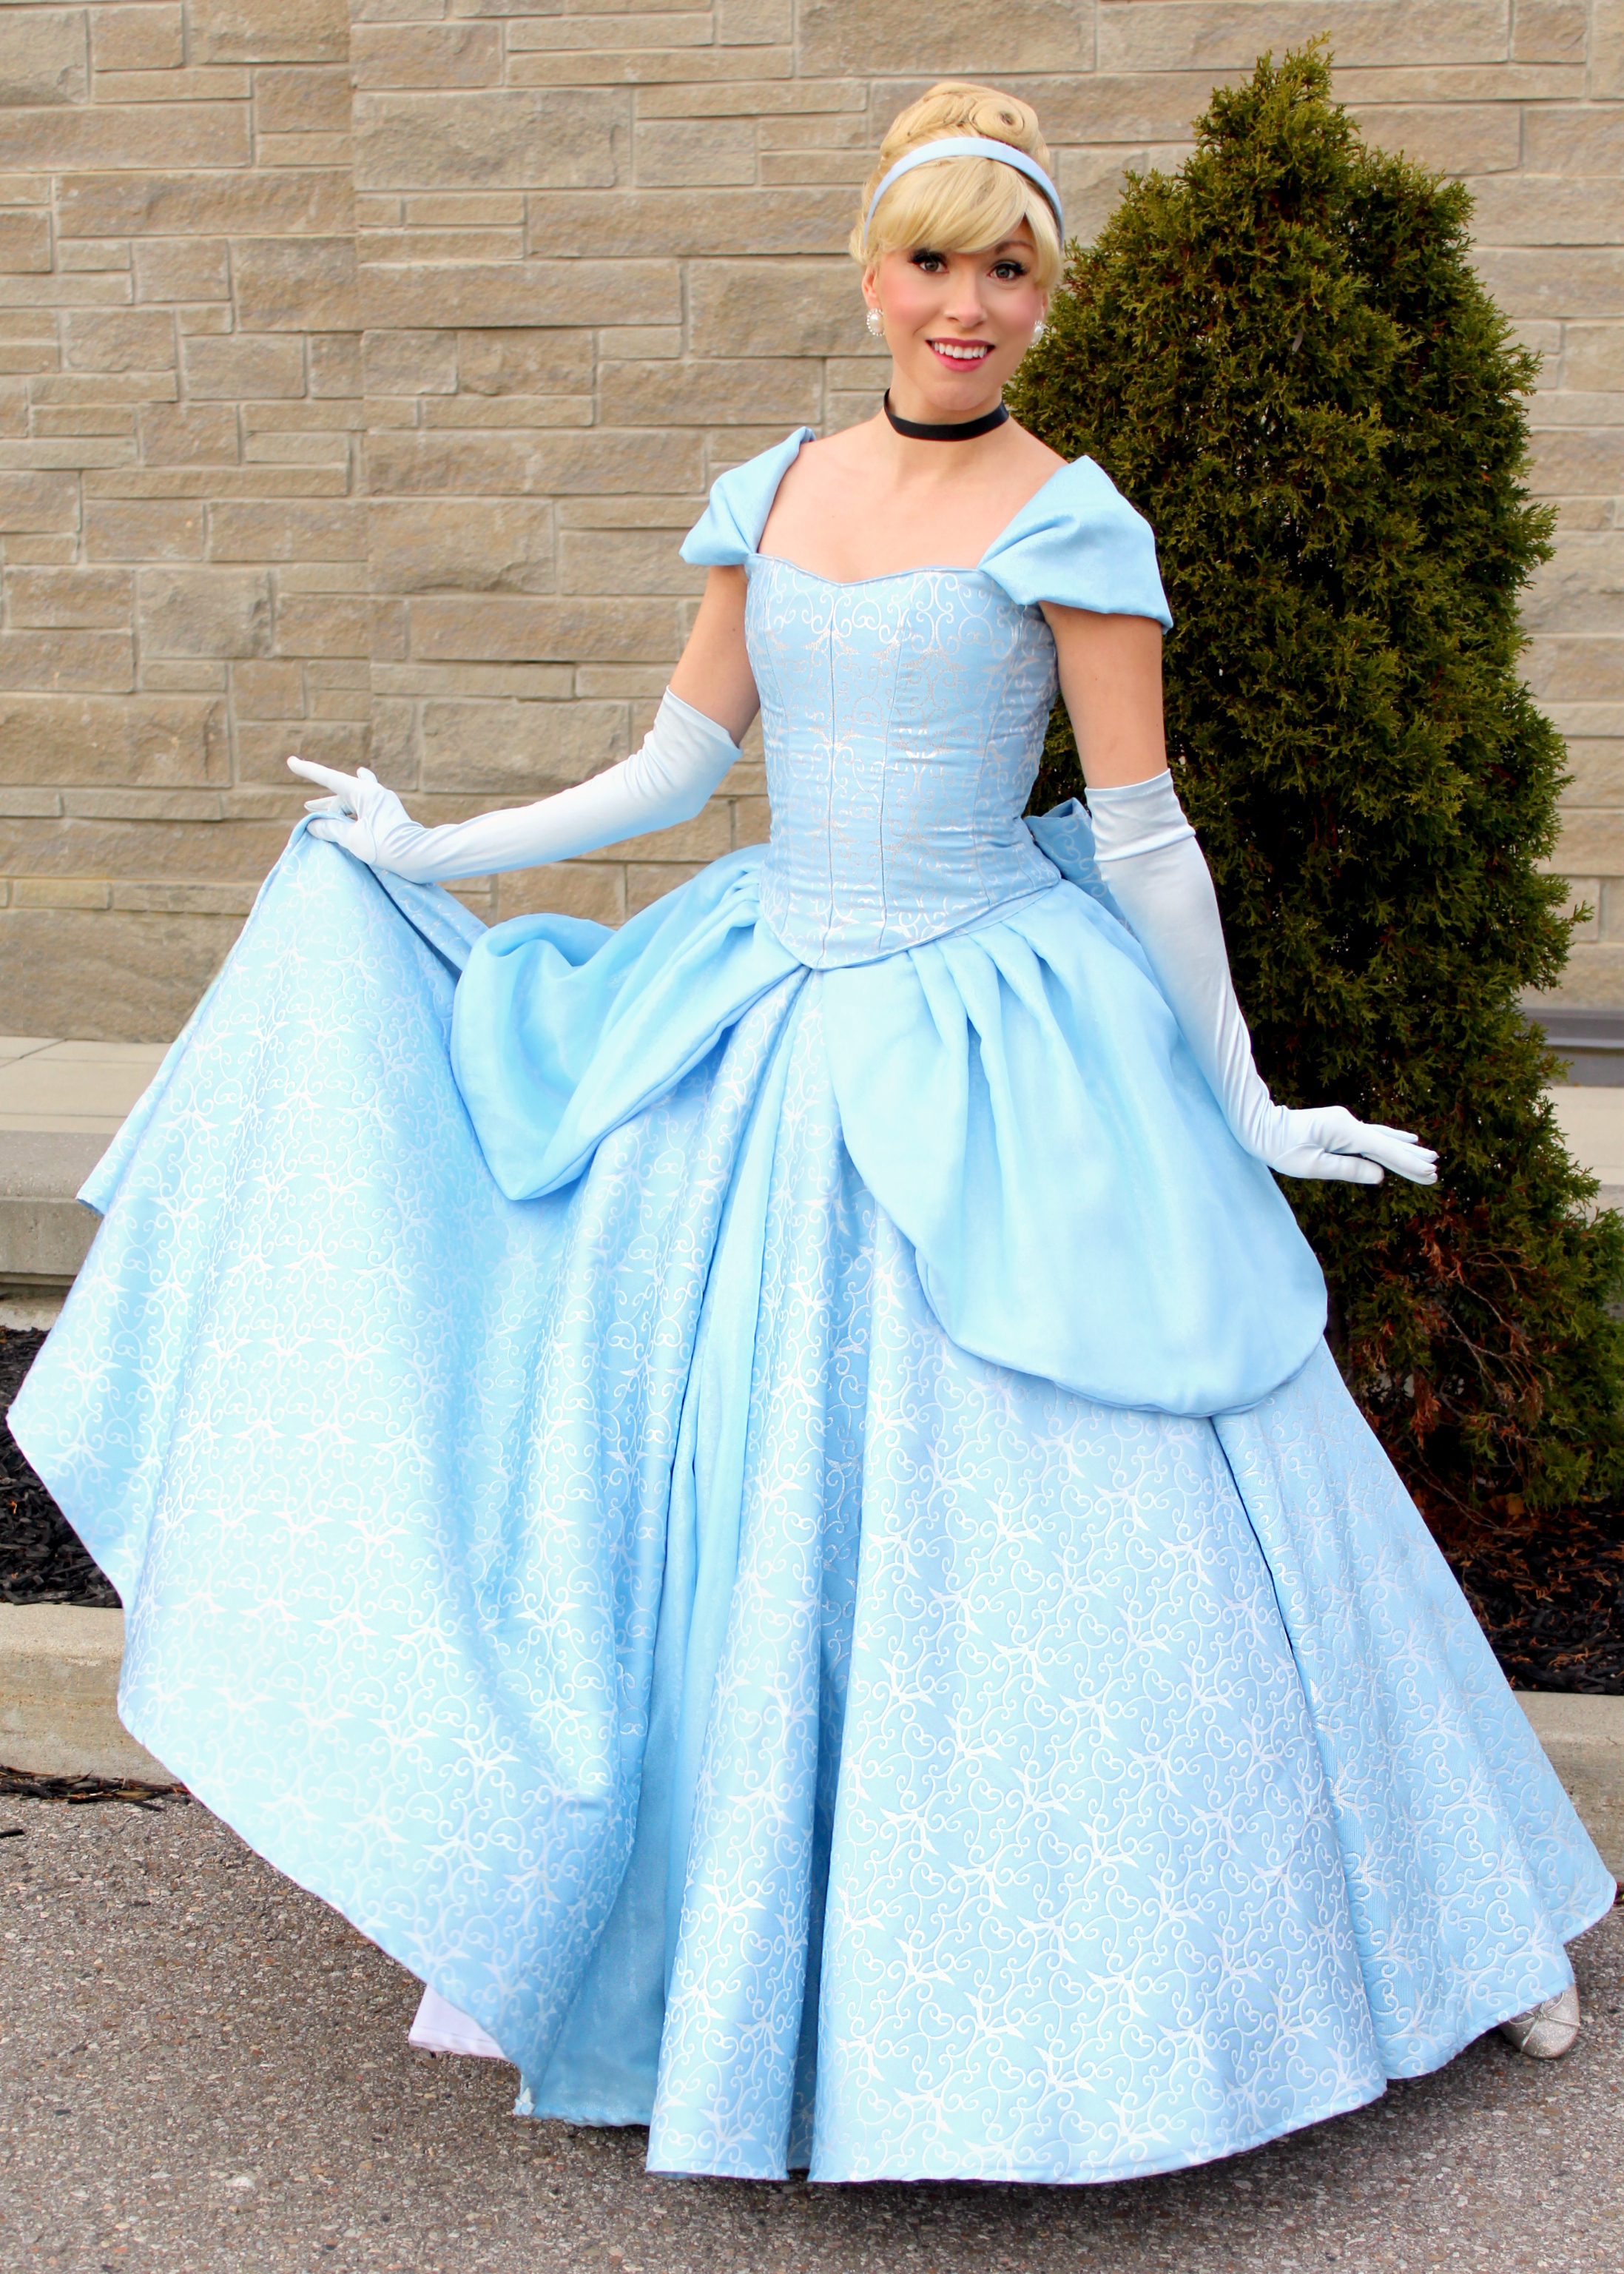 Cinderella parks Once Upon a Princess to